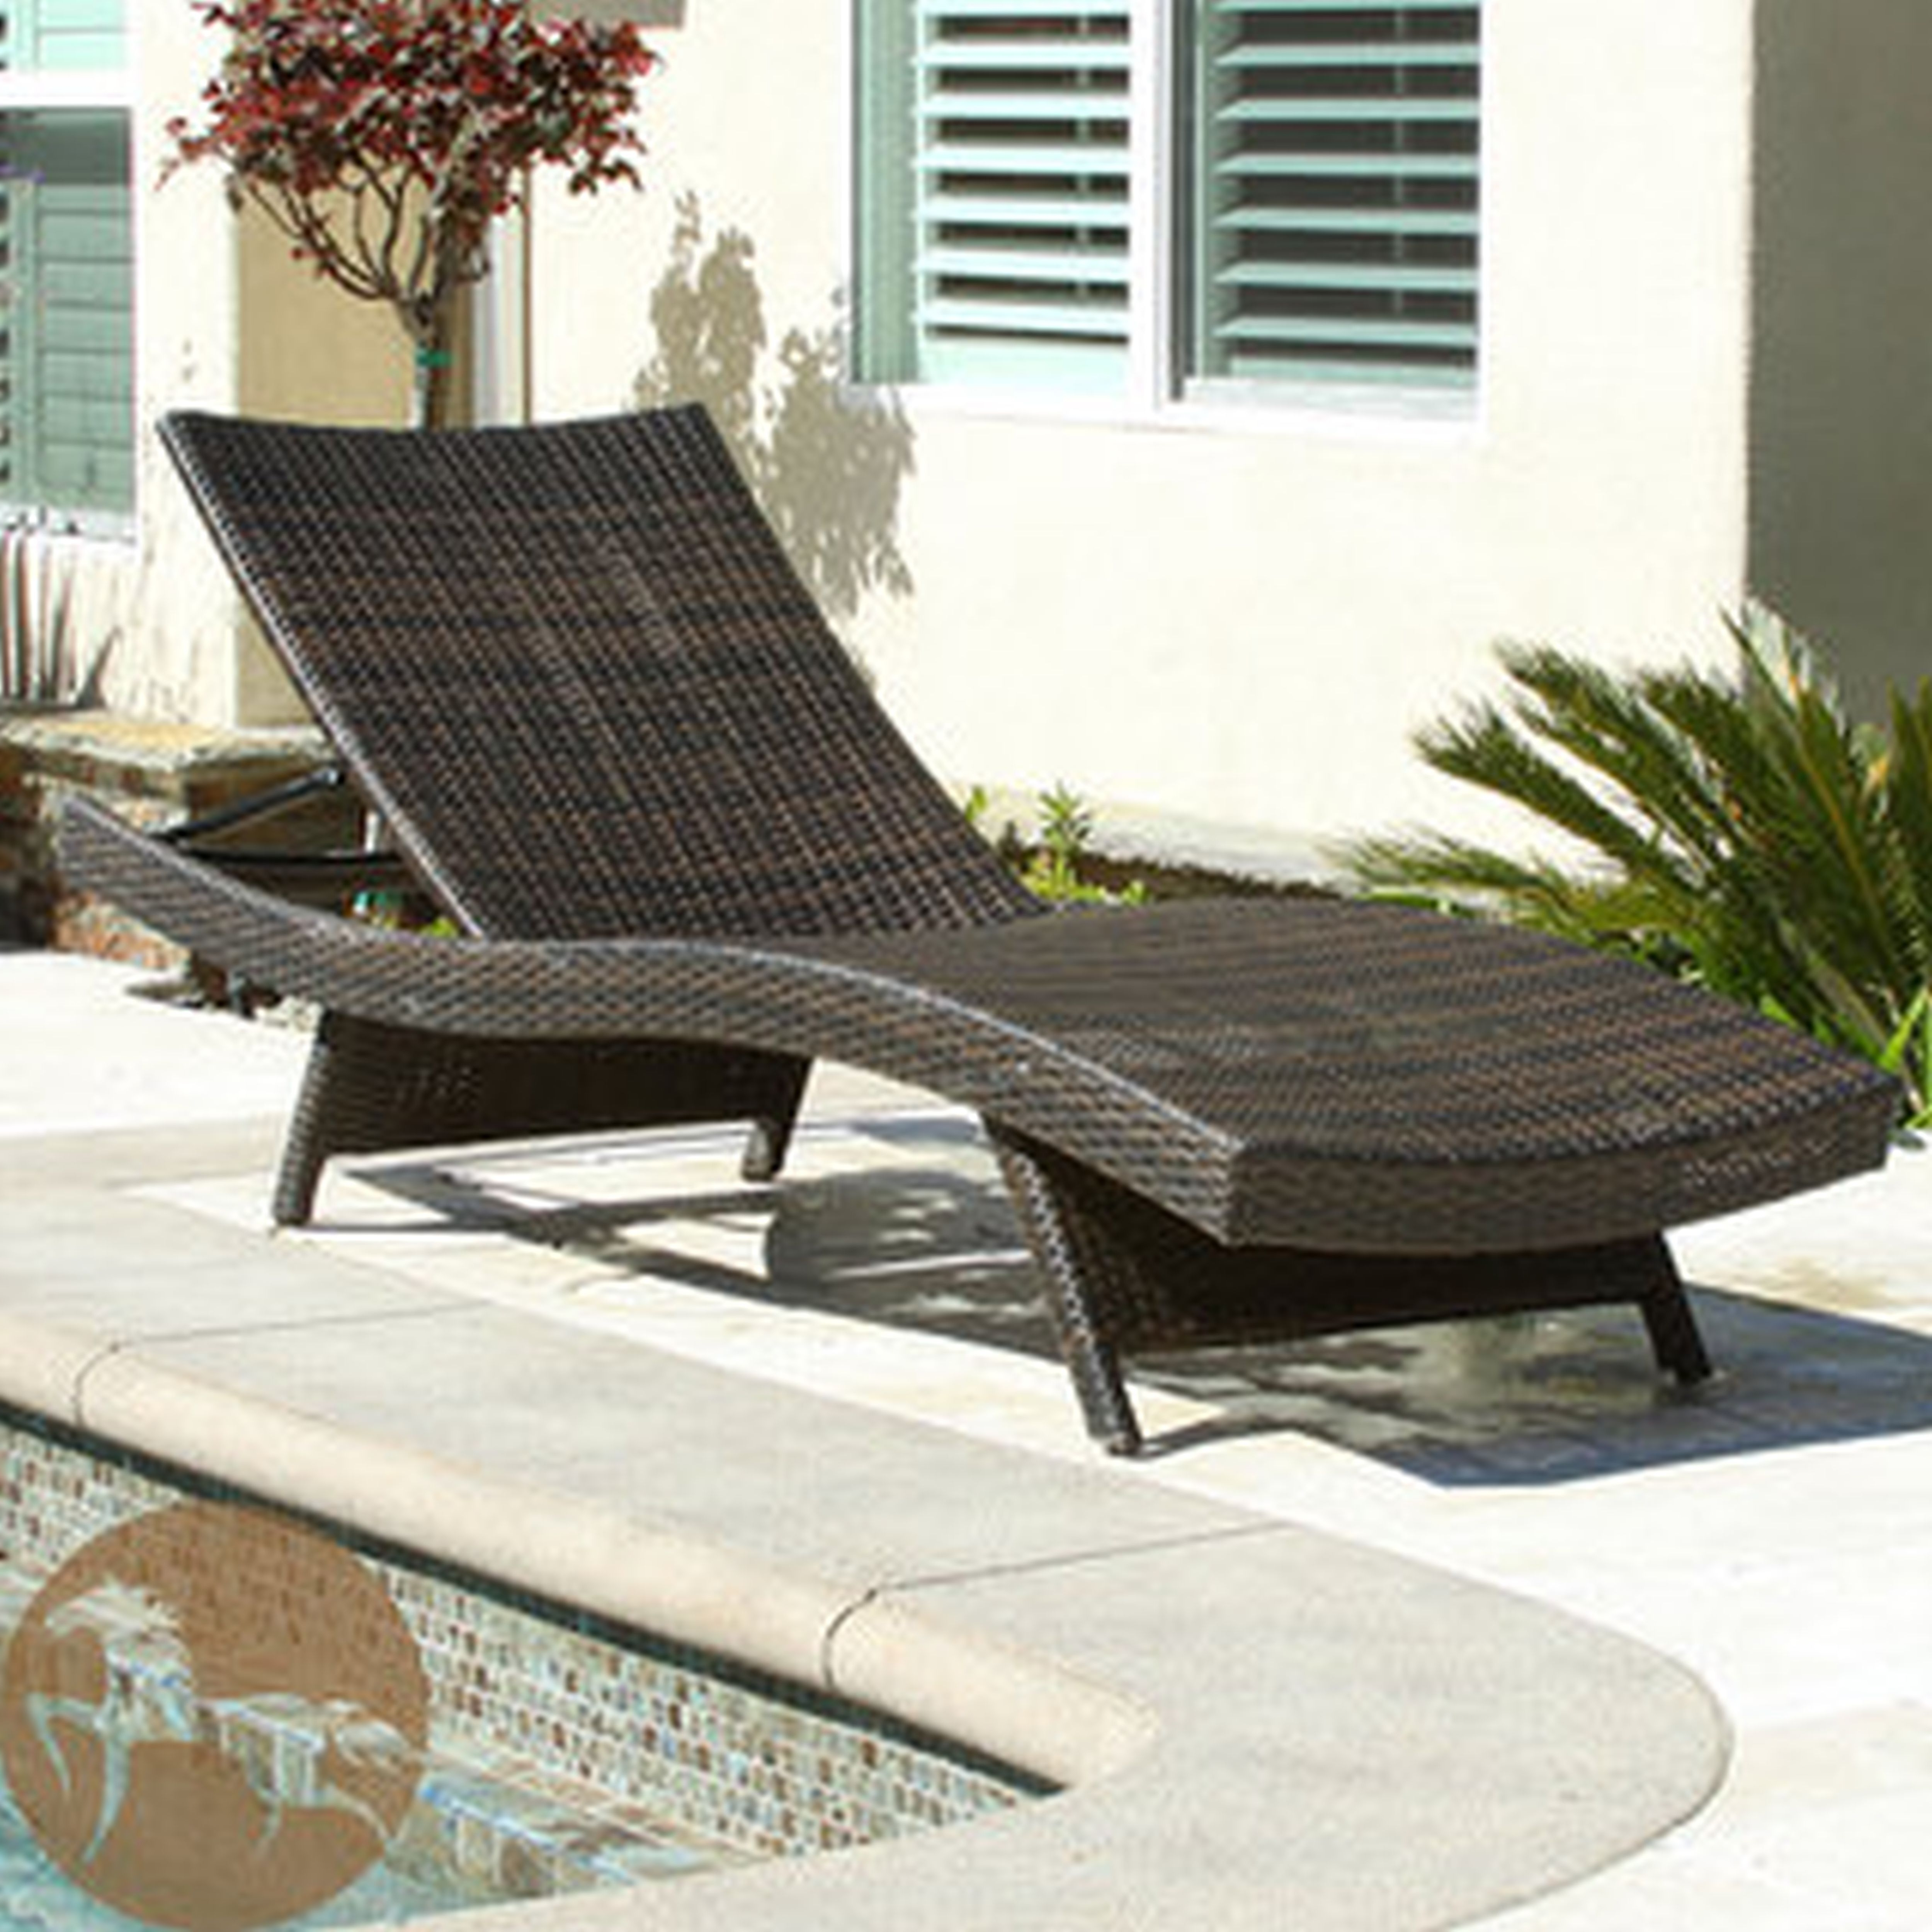 Fashionable Chaise Lounges For Patio Regarding Outdoor : Chaise Lounge Chairs For Living Room Indoor Chaise (View 4 of 15)